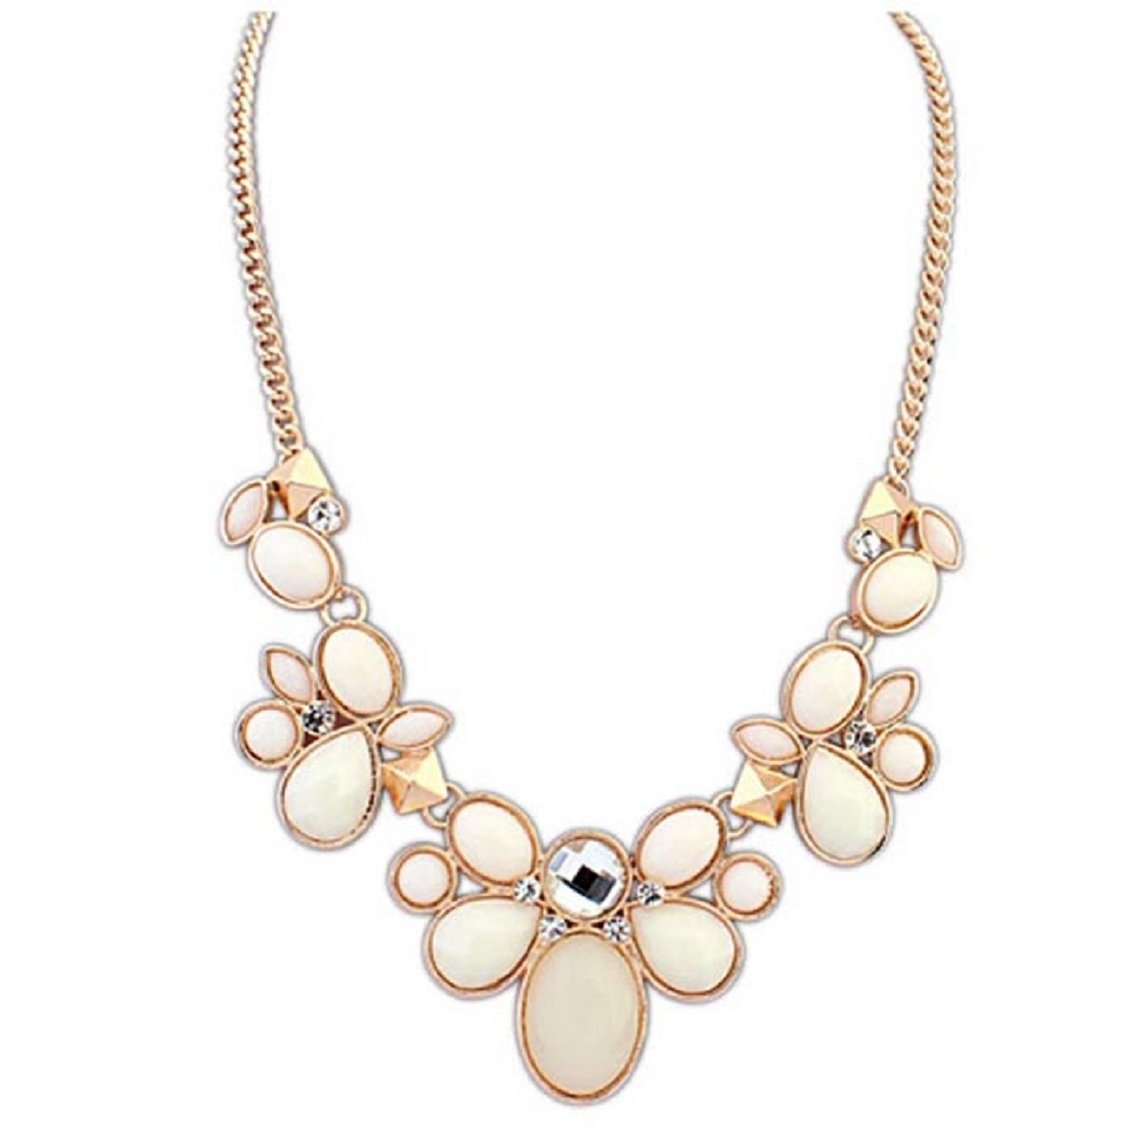 Willtoo(TM) Women Summer Crystal Rhinestone Necklace Flower Bib Chunky Statement Chain (Beige)